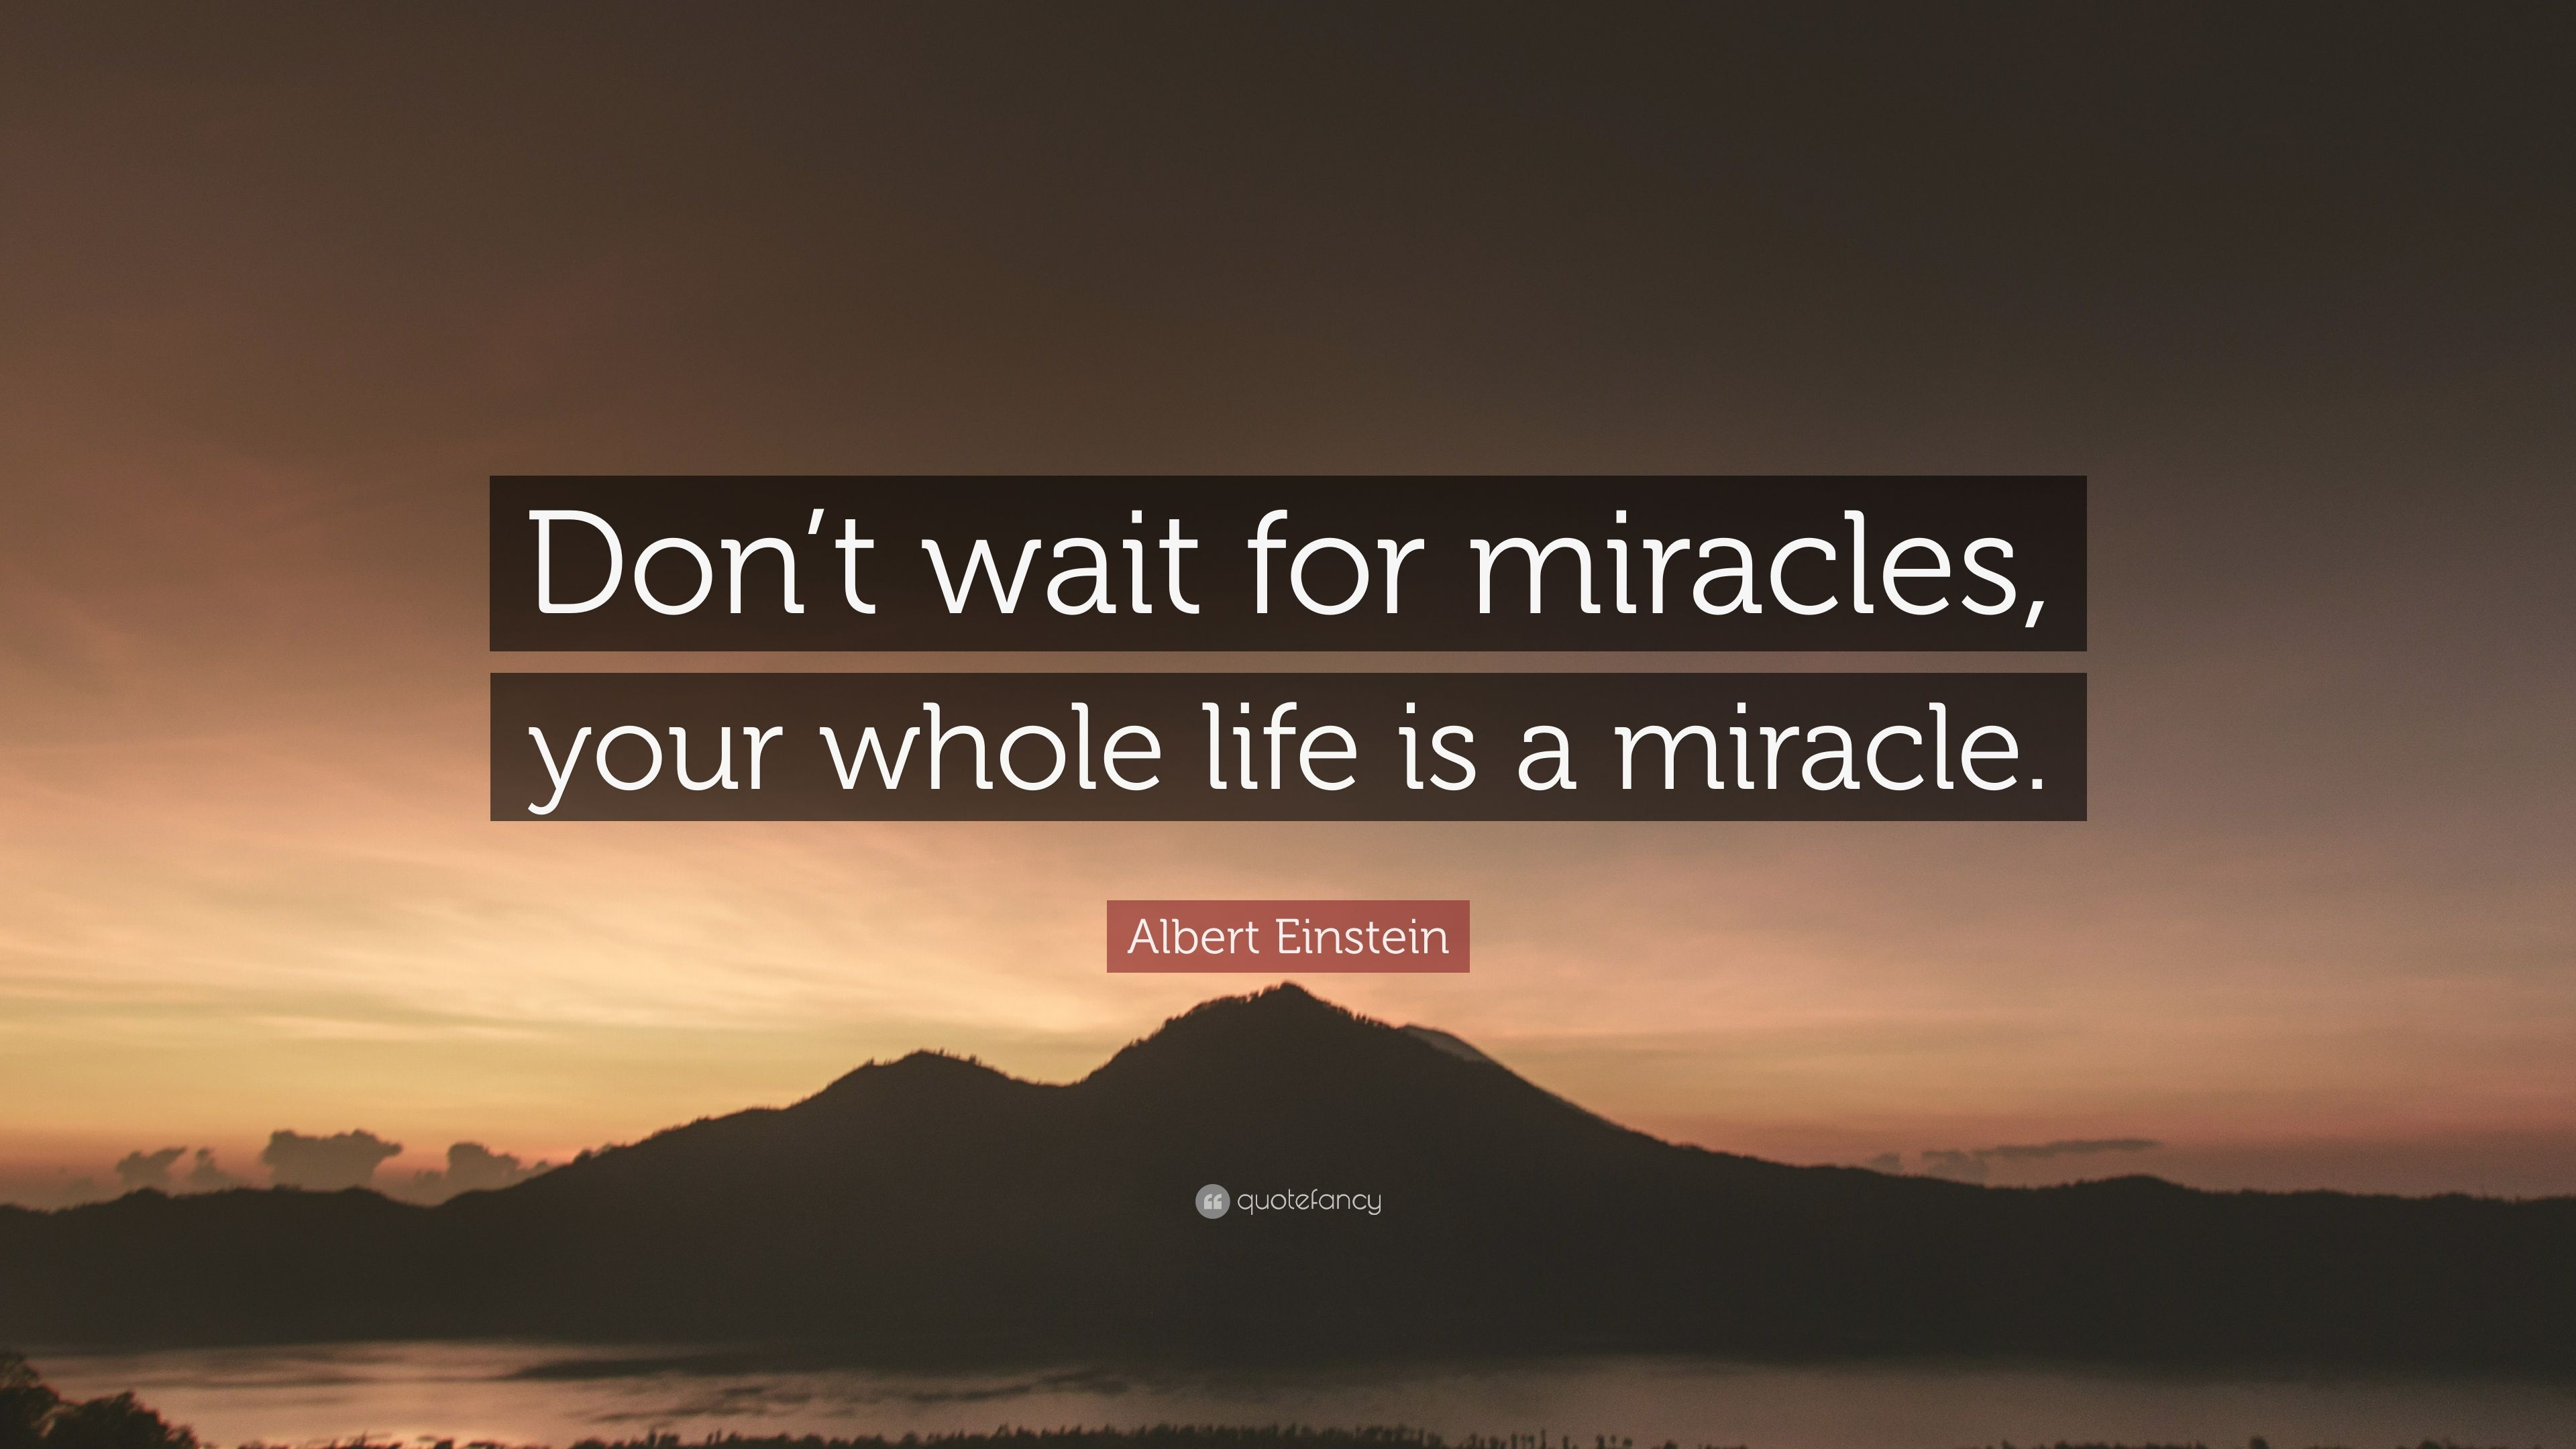 Albert Einstein Quotes About Life Miracle